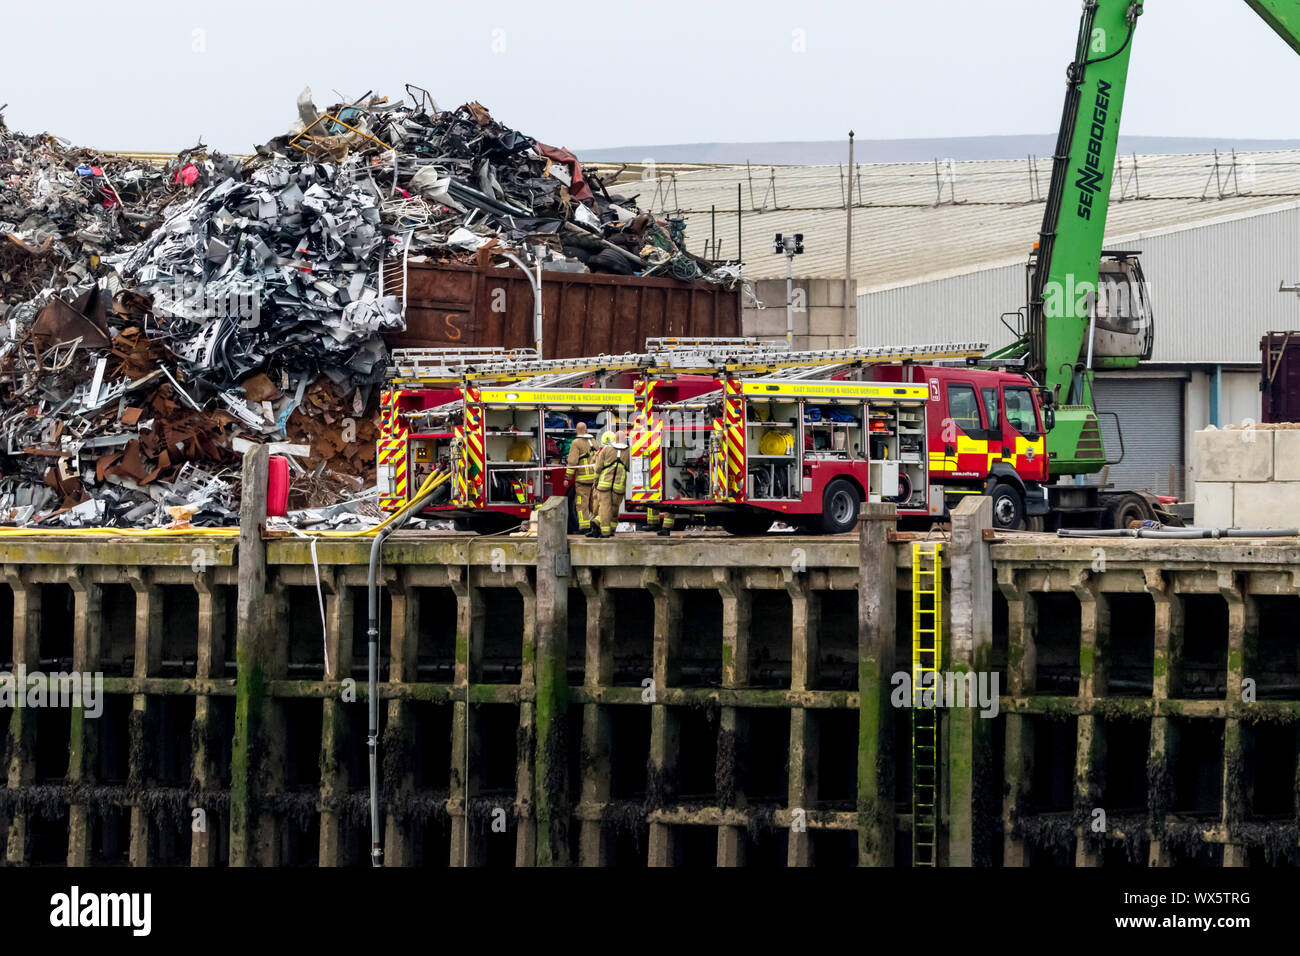 Newhaven, East Quay, East Sussex, UK. 16th September 2019. East Sussex fire and rescue service tackle a blaze at Ripley and Co scrap metal plant. Credit: Alan Fraser/Alamy Live News Stock Photo